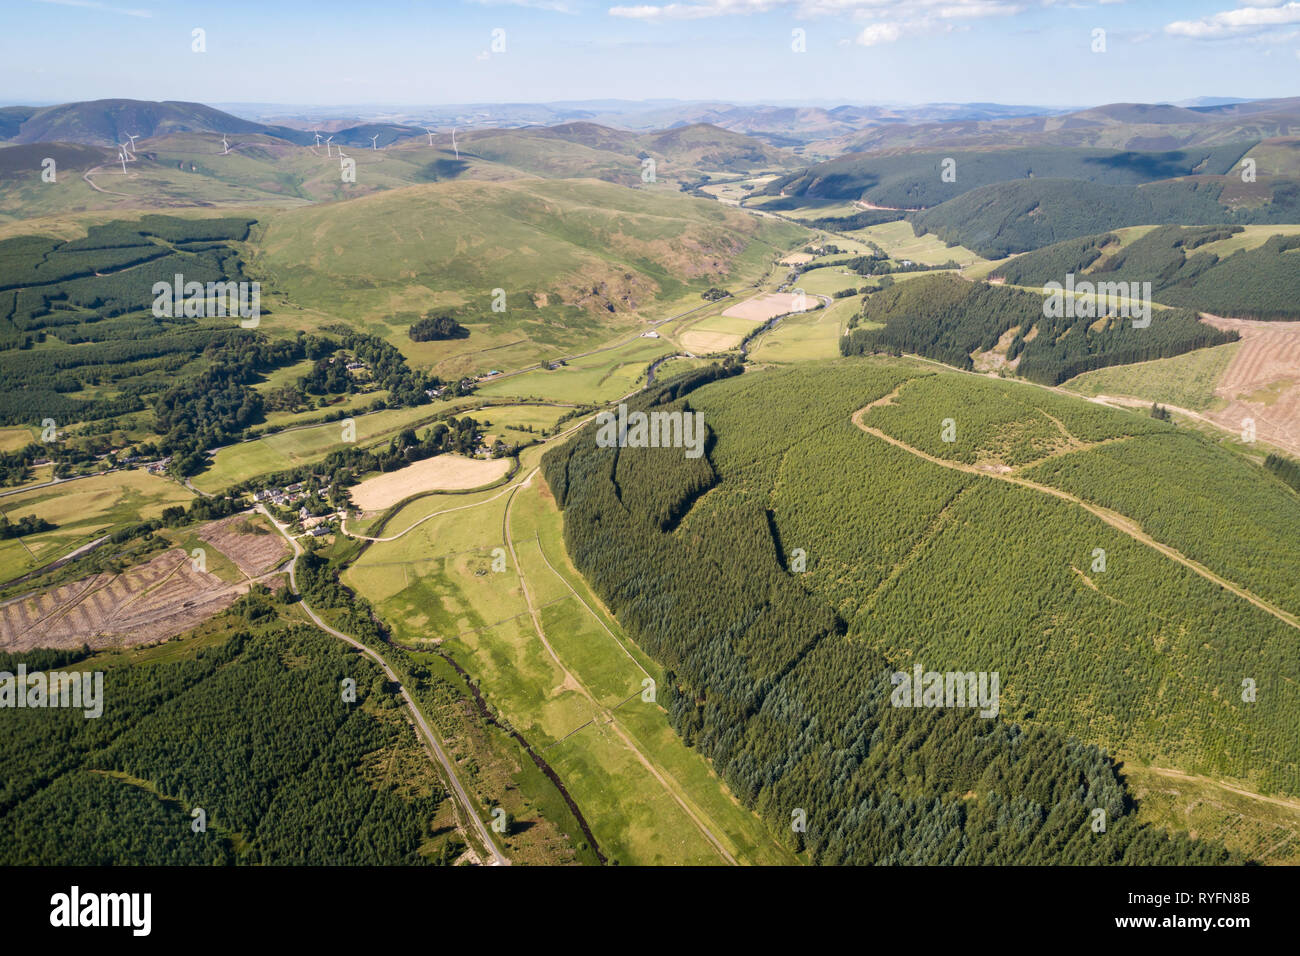 Aerial image showing the Upper Tweed Valley and the village of Tweedsmuir looking north towards the distant Pentland Hills. Stock Photo